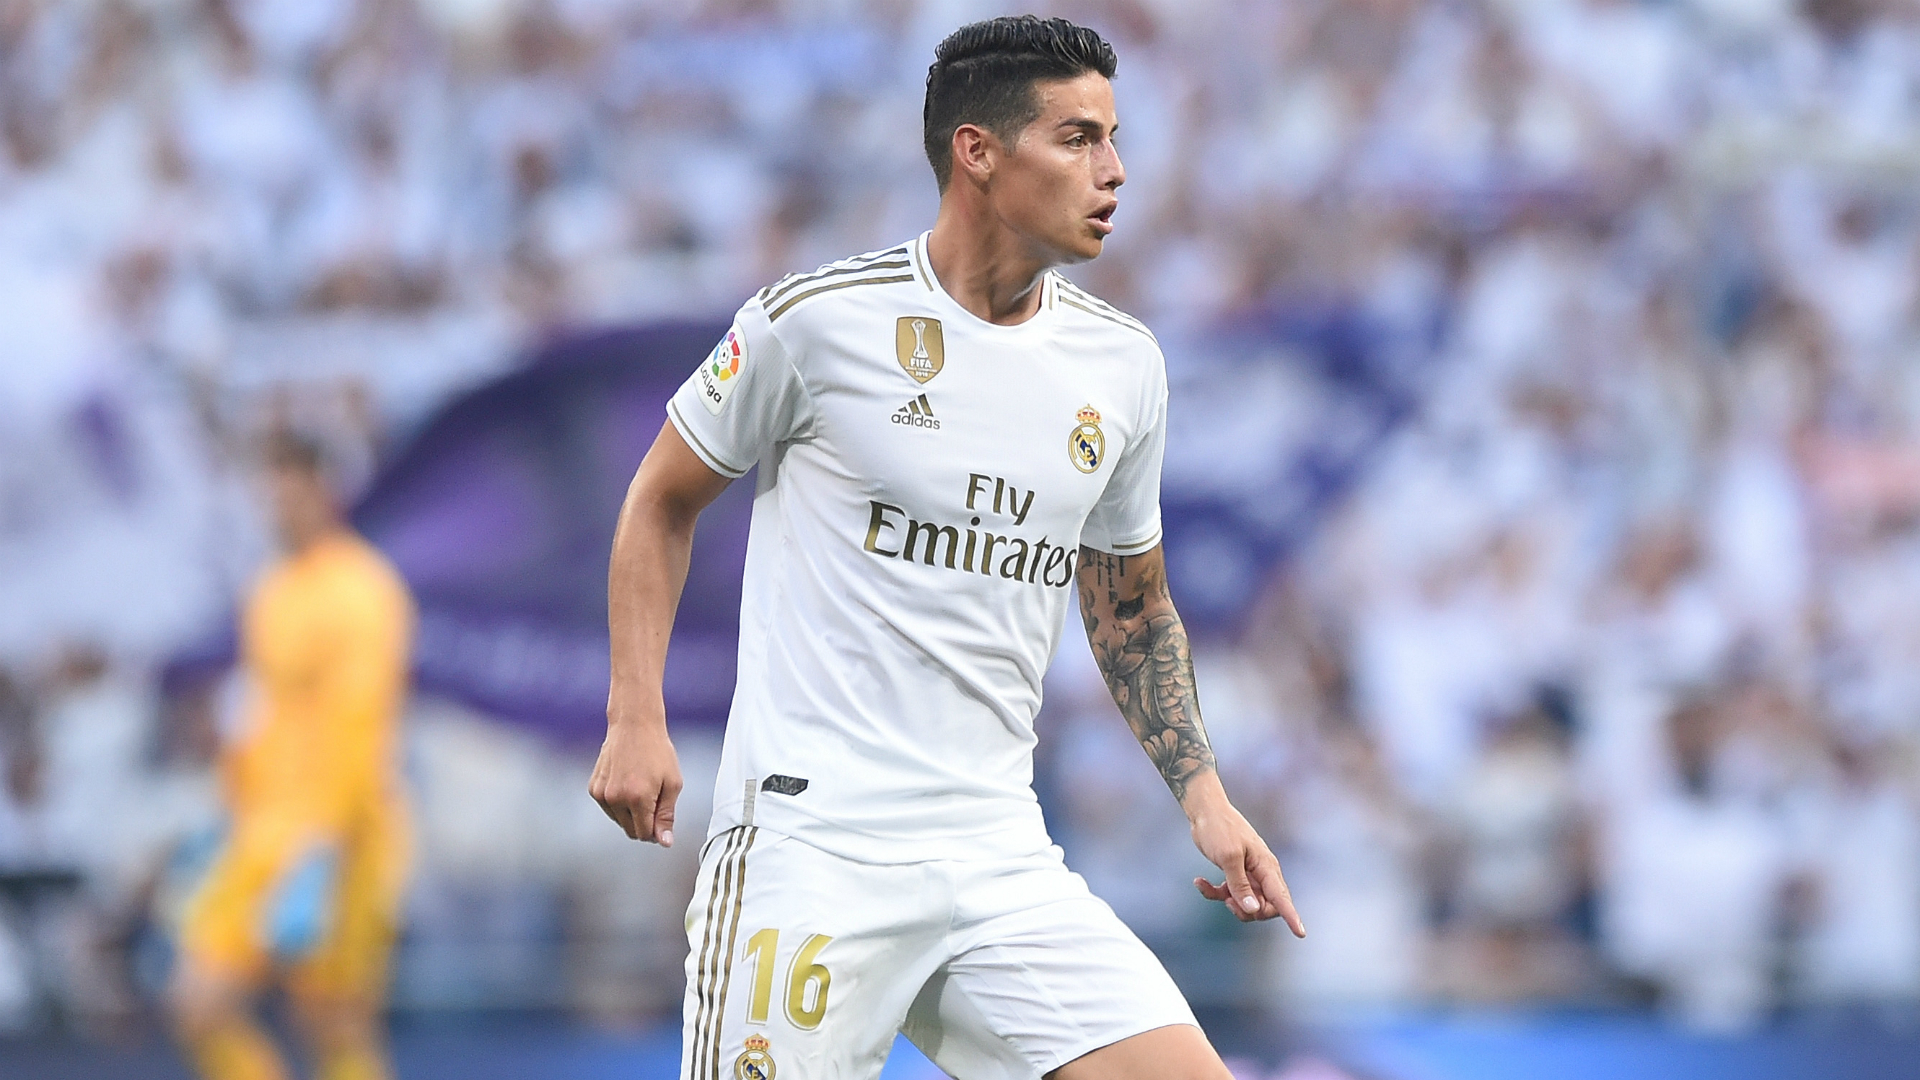 Madrid's James: Bernabeu return a unique feeling